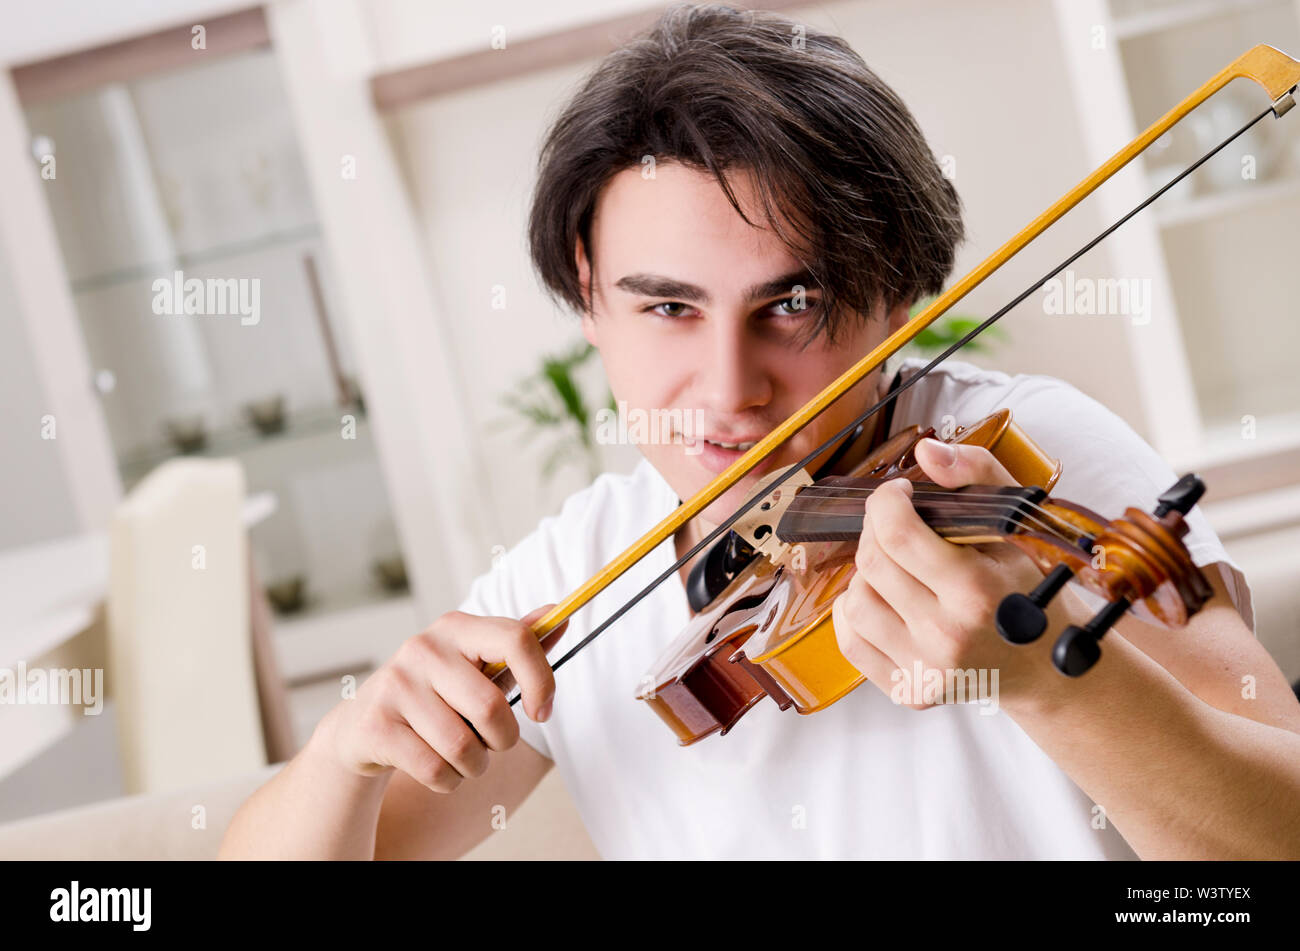 The young musician man practicing playing violin at home - Stock Image